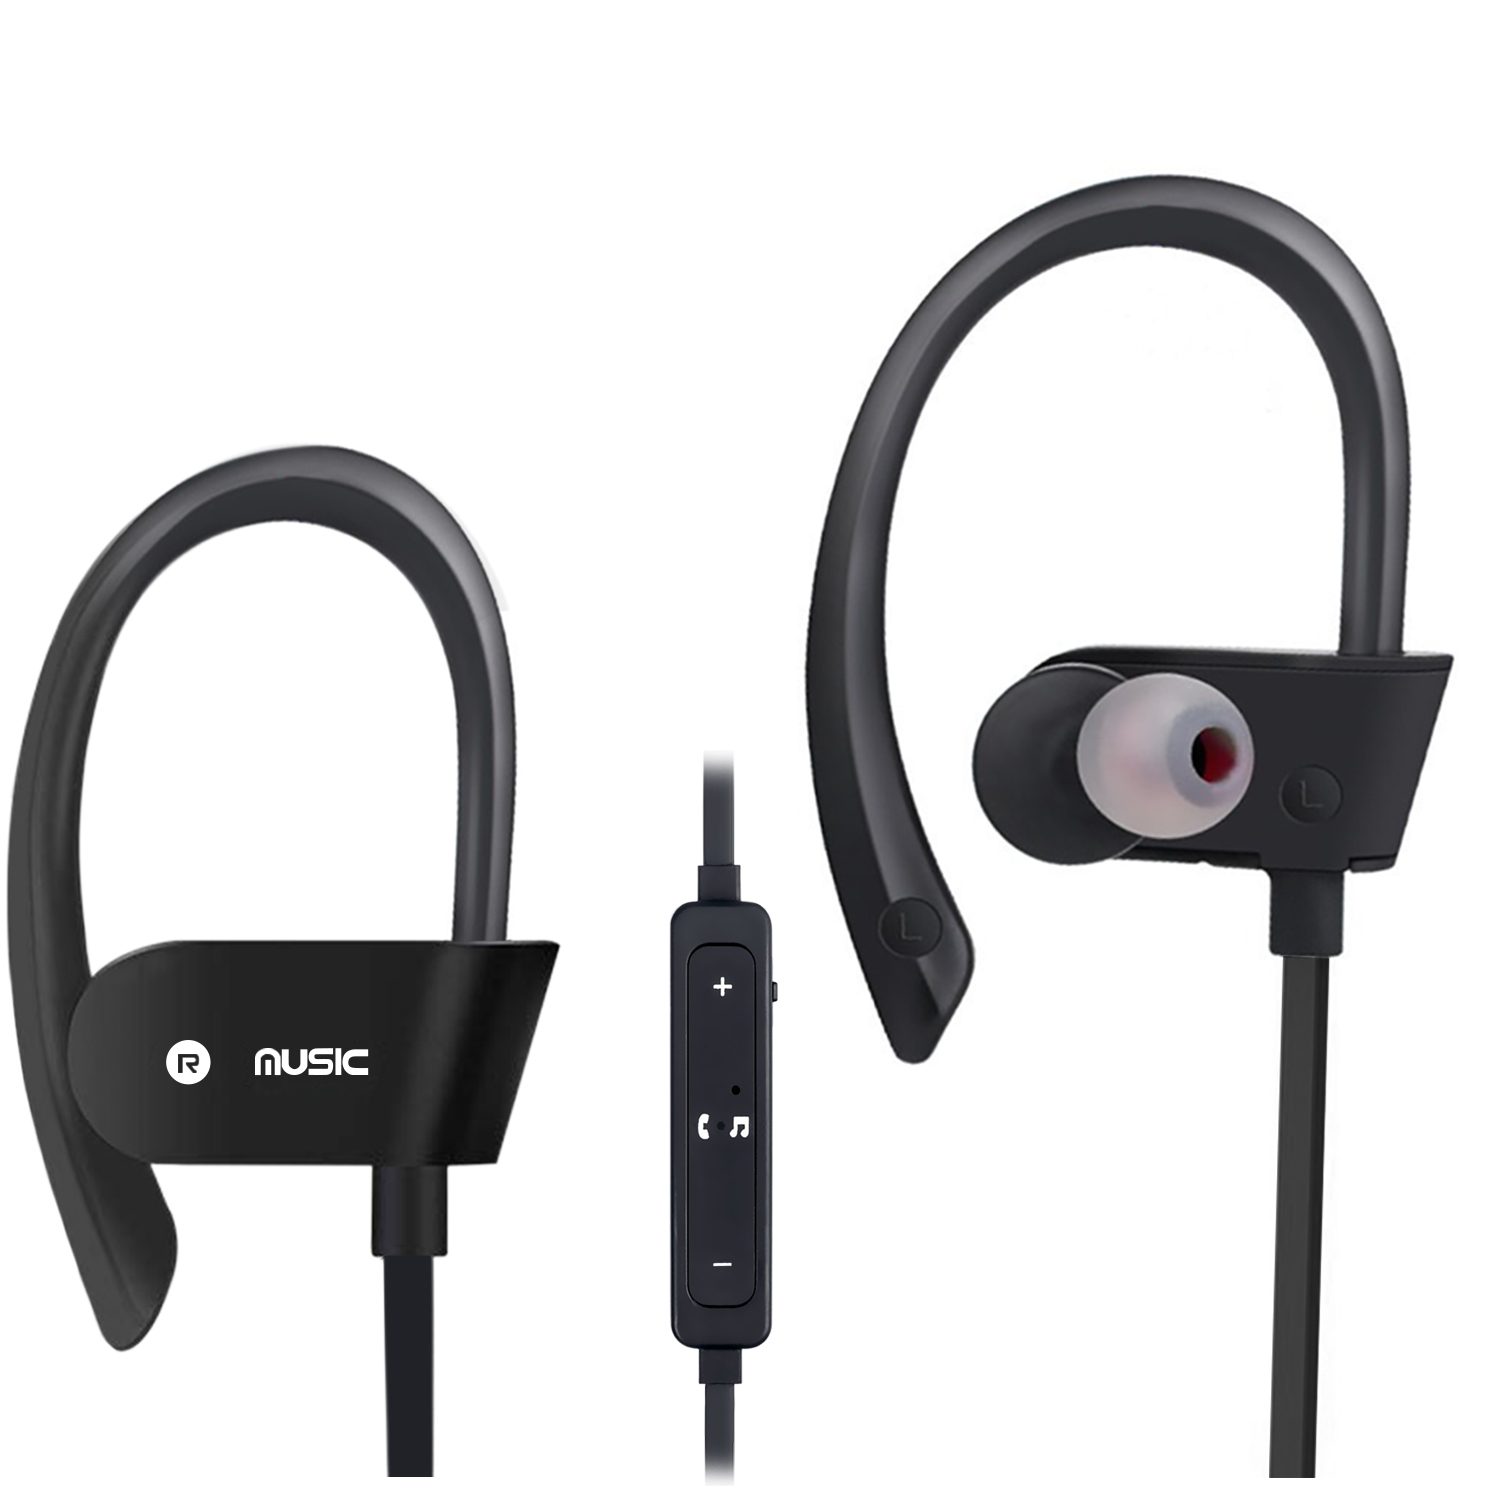 Bluetooth Headphones, Wireless Sports Earphones w/ Mic IPX7 Waterproof HD Stereo Sweatproof In Ear Earbuds for Gym Running Workout, 8 Hour Play Time Noise Cancelling Headsets